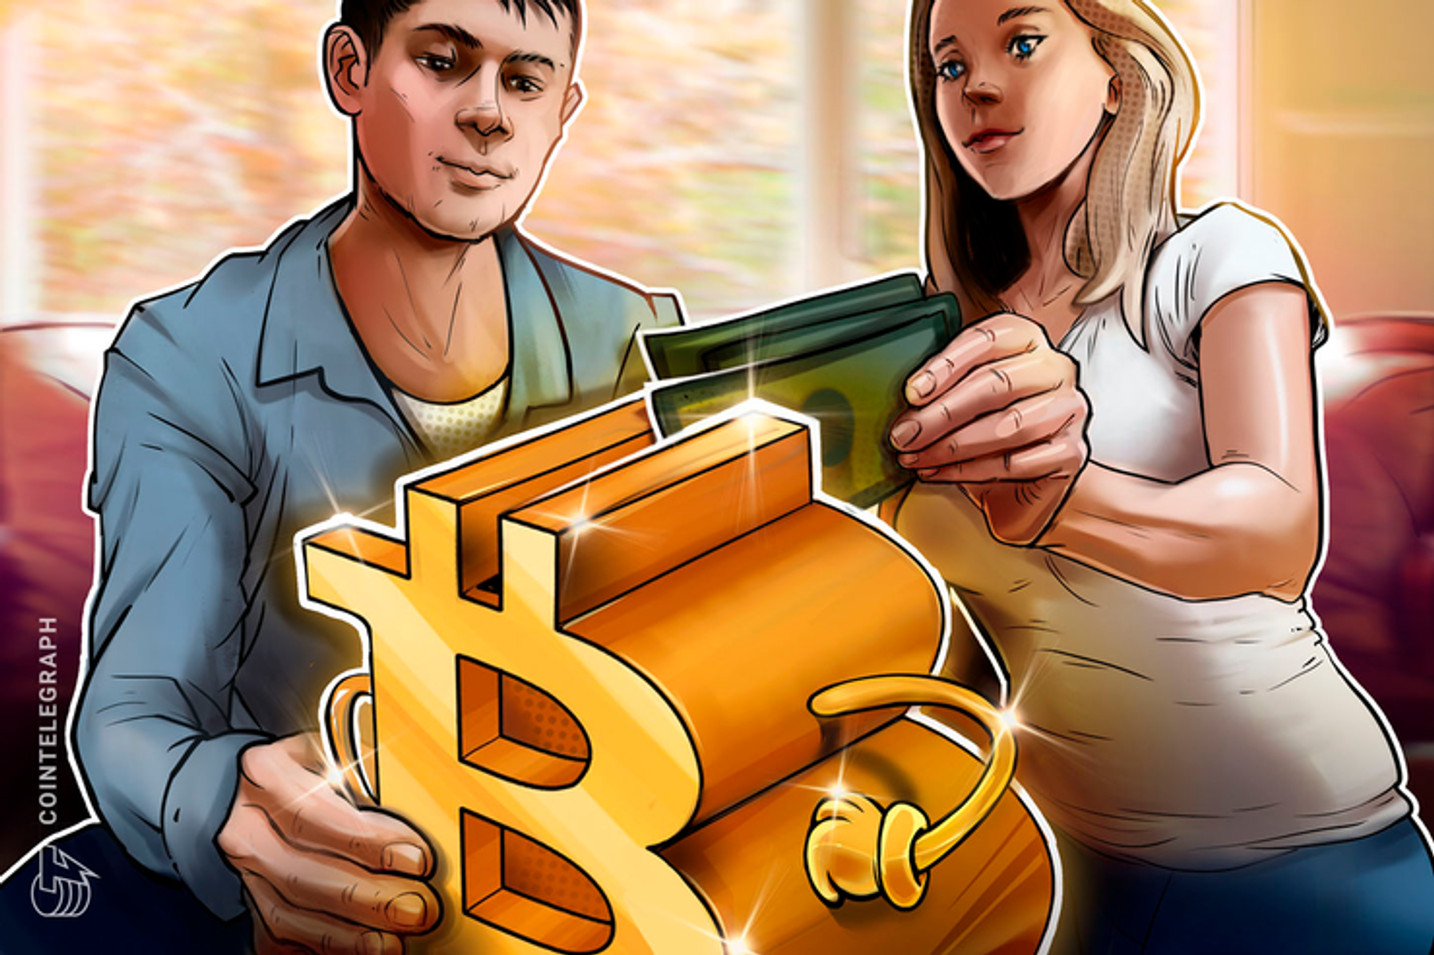 Las Family Offices finalmente aceptan los beneficios de invertir en Bitcoin